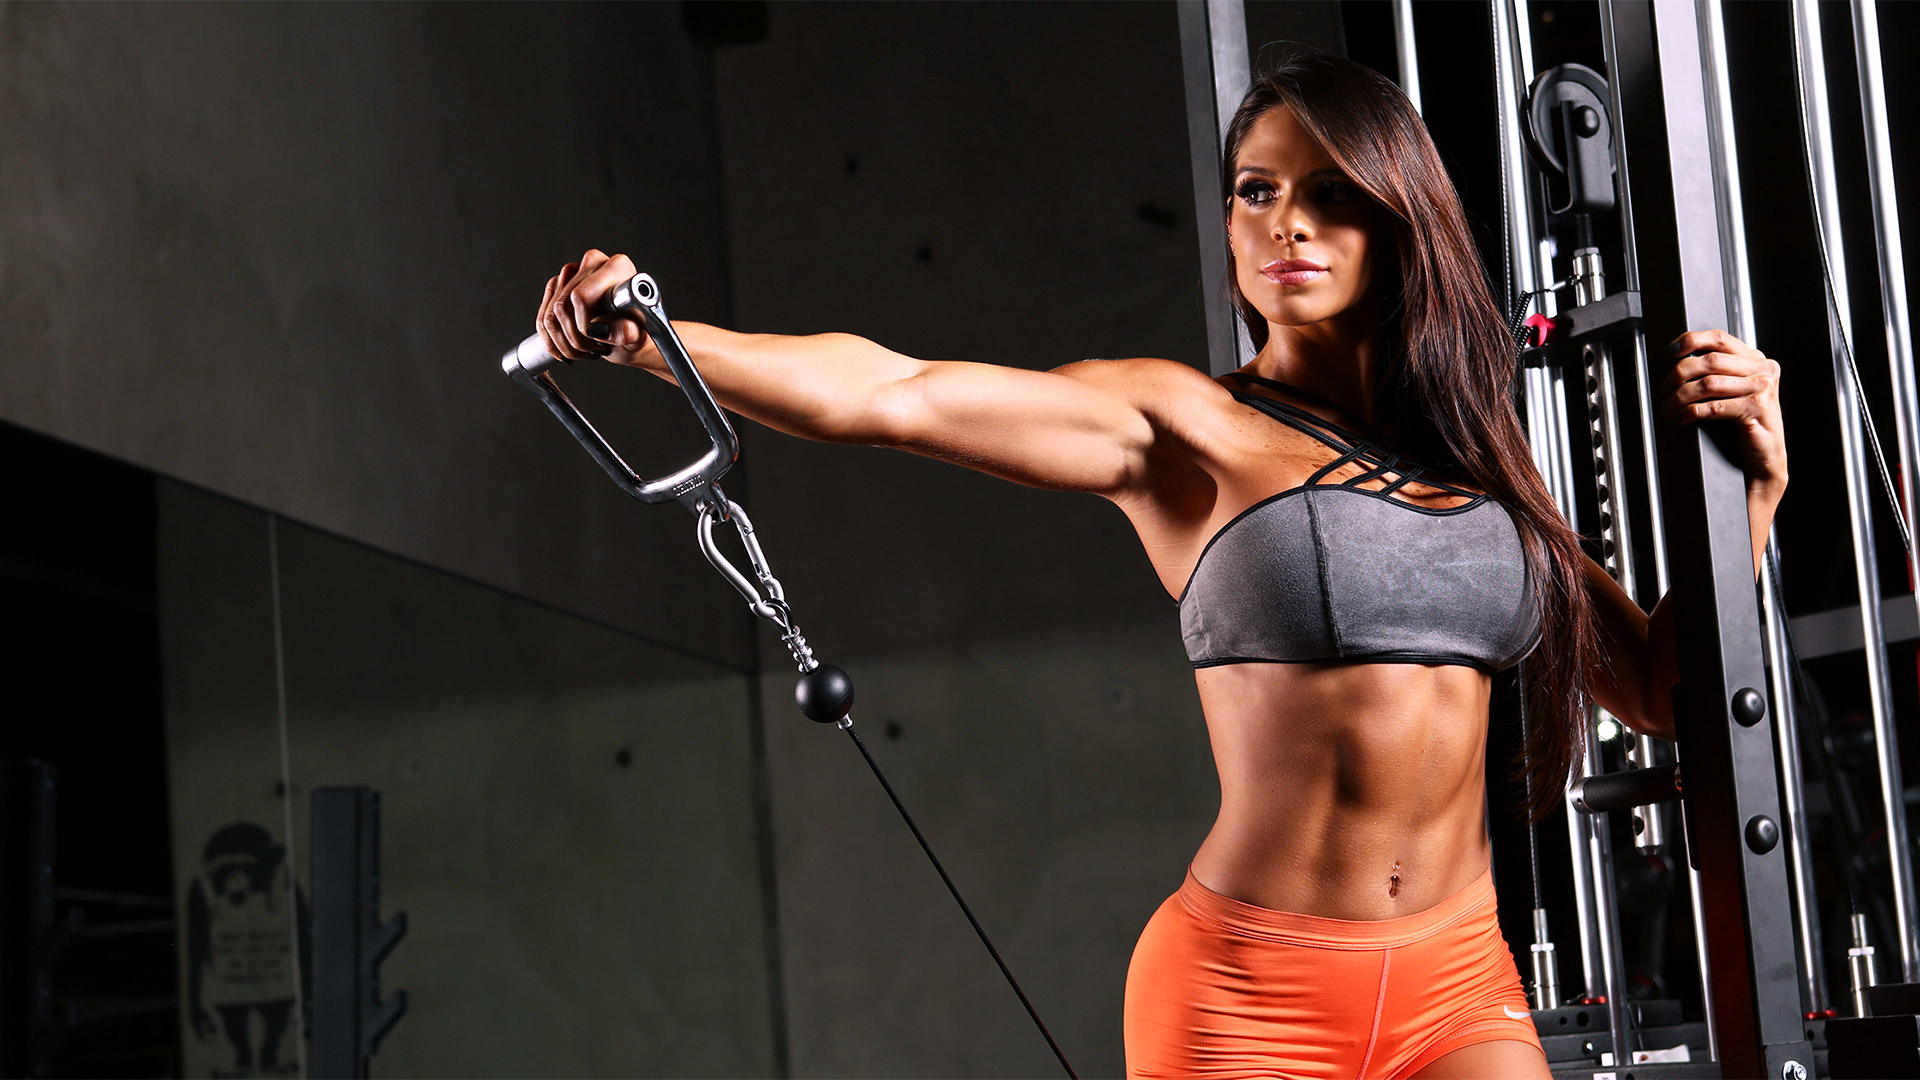 Thumb Workouts Michelle Lewin